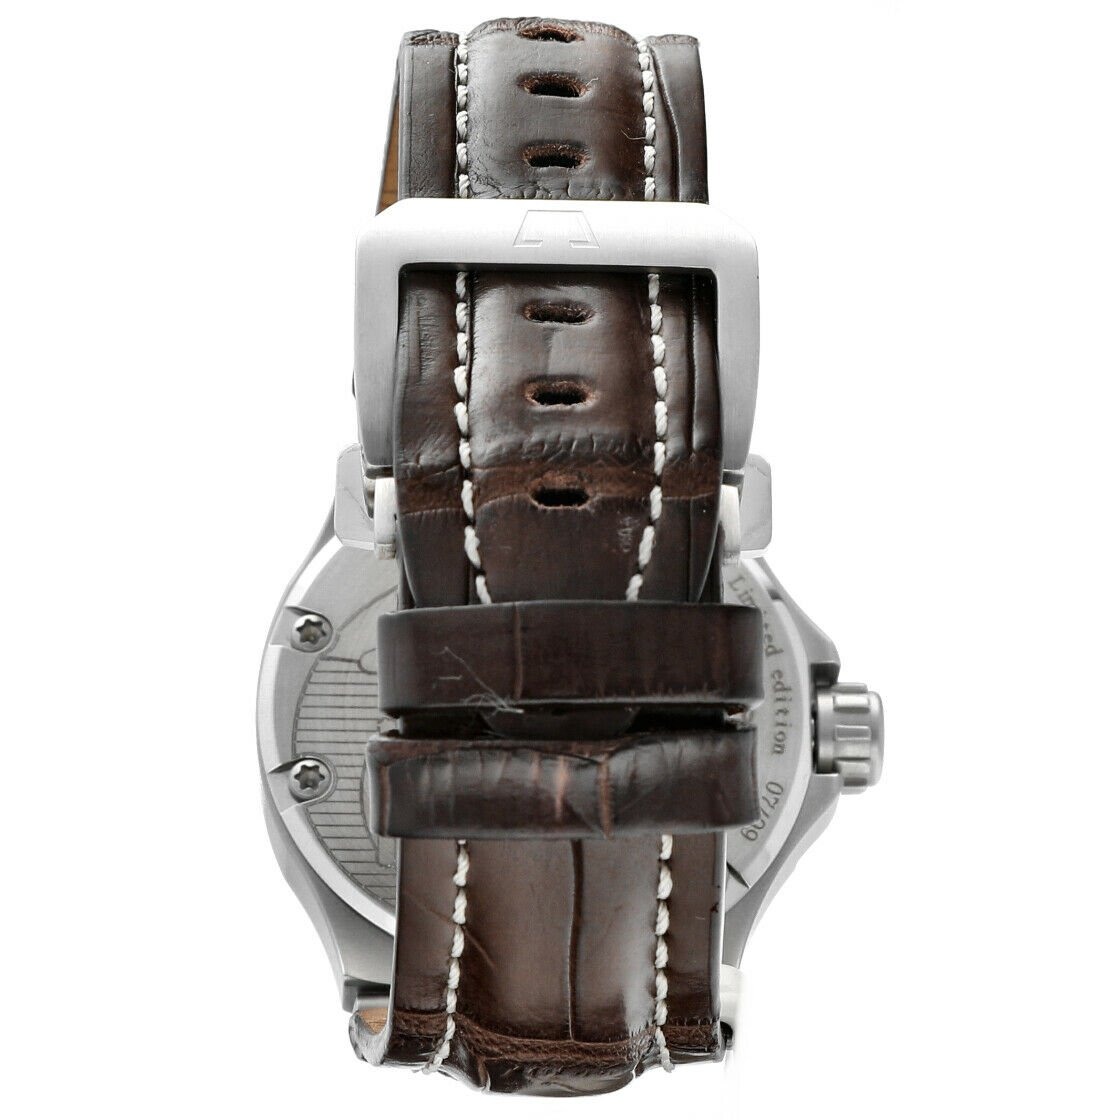 Dino Zei Nautilo Limited Edition 11007 Steel Leather Automatic Mens Watch 124232242502 5